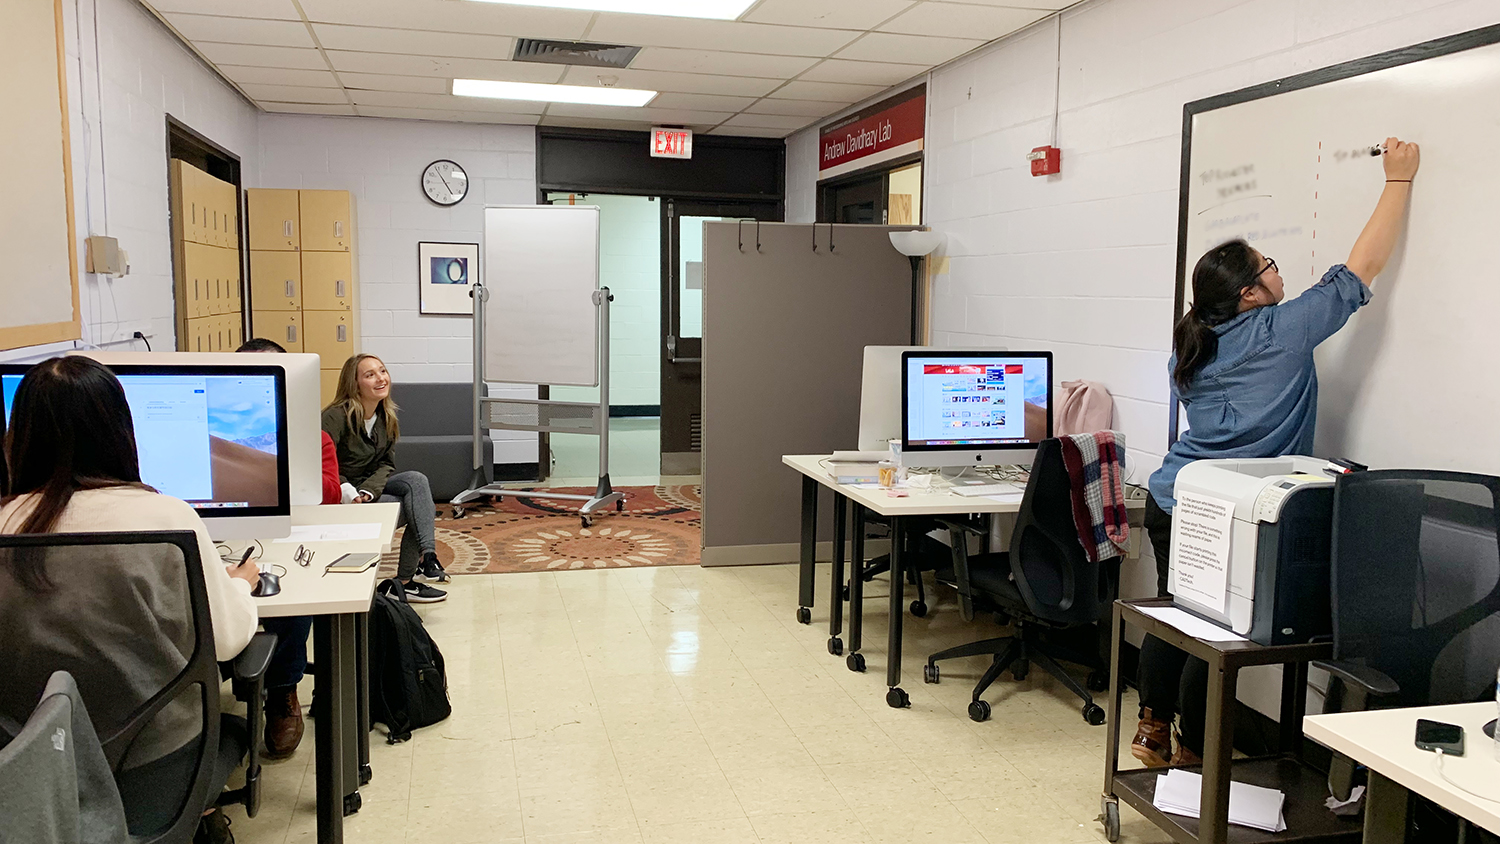 Students working and interacting in a lab space